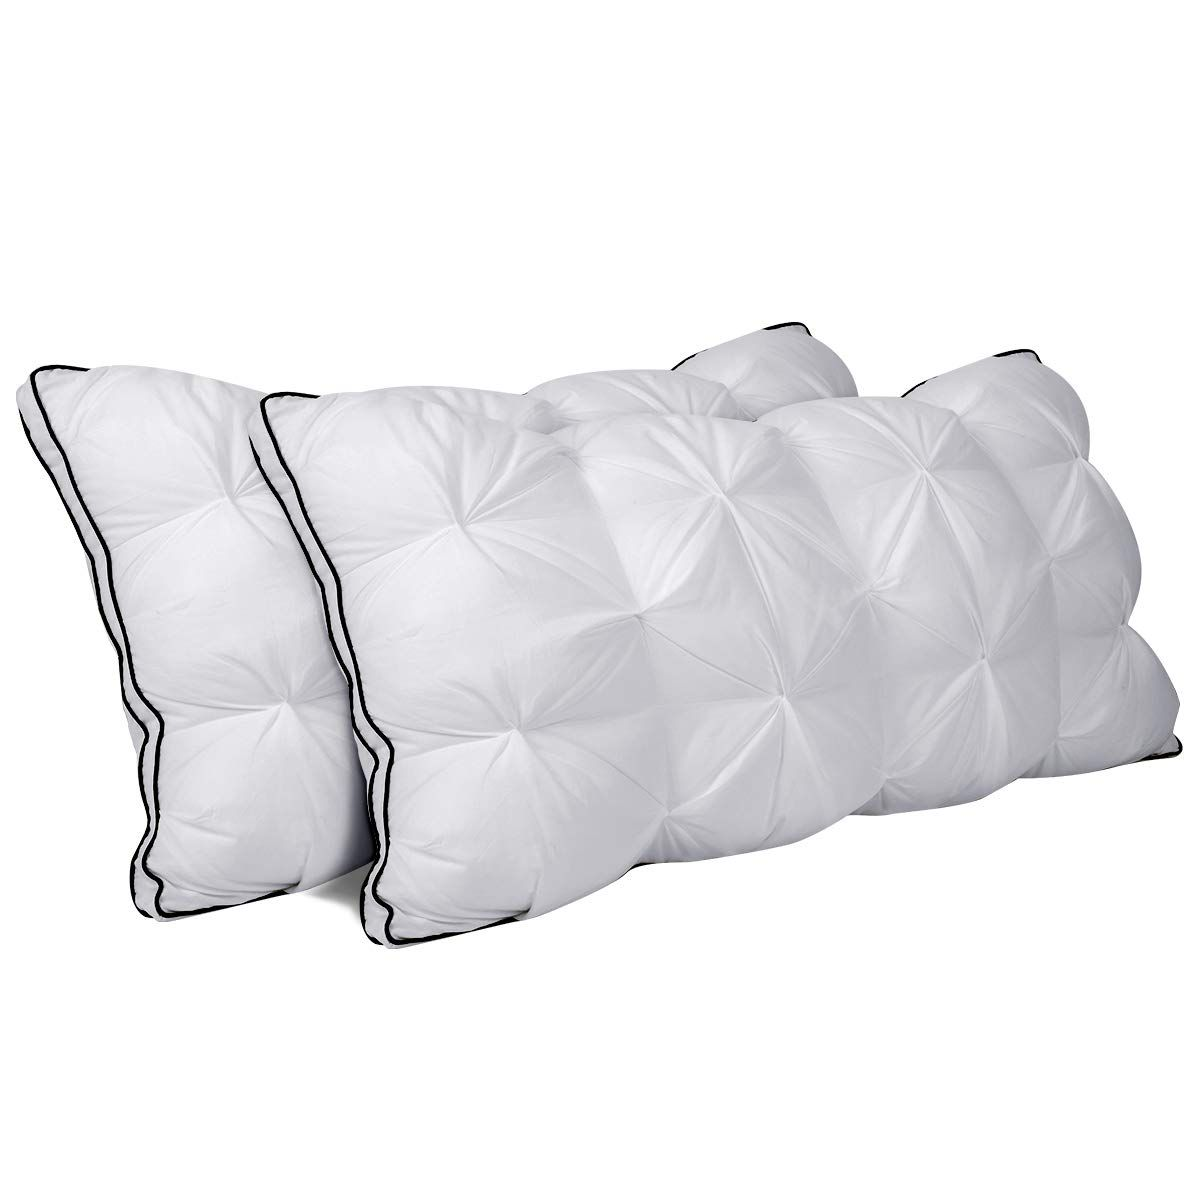 Down Alternative Cooling Pillows with Super Soft Plush Fiber Fill,Luxury Plush Gel Bed Pillows Set of 2 Bed Pillows for Sleeping 2 Pack of Queen